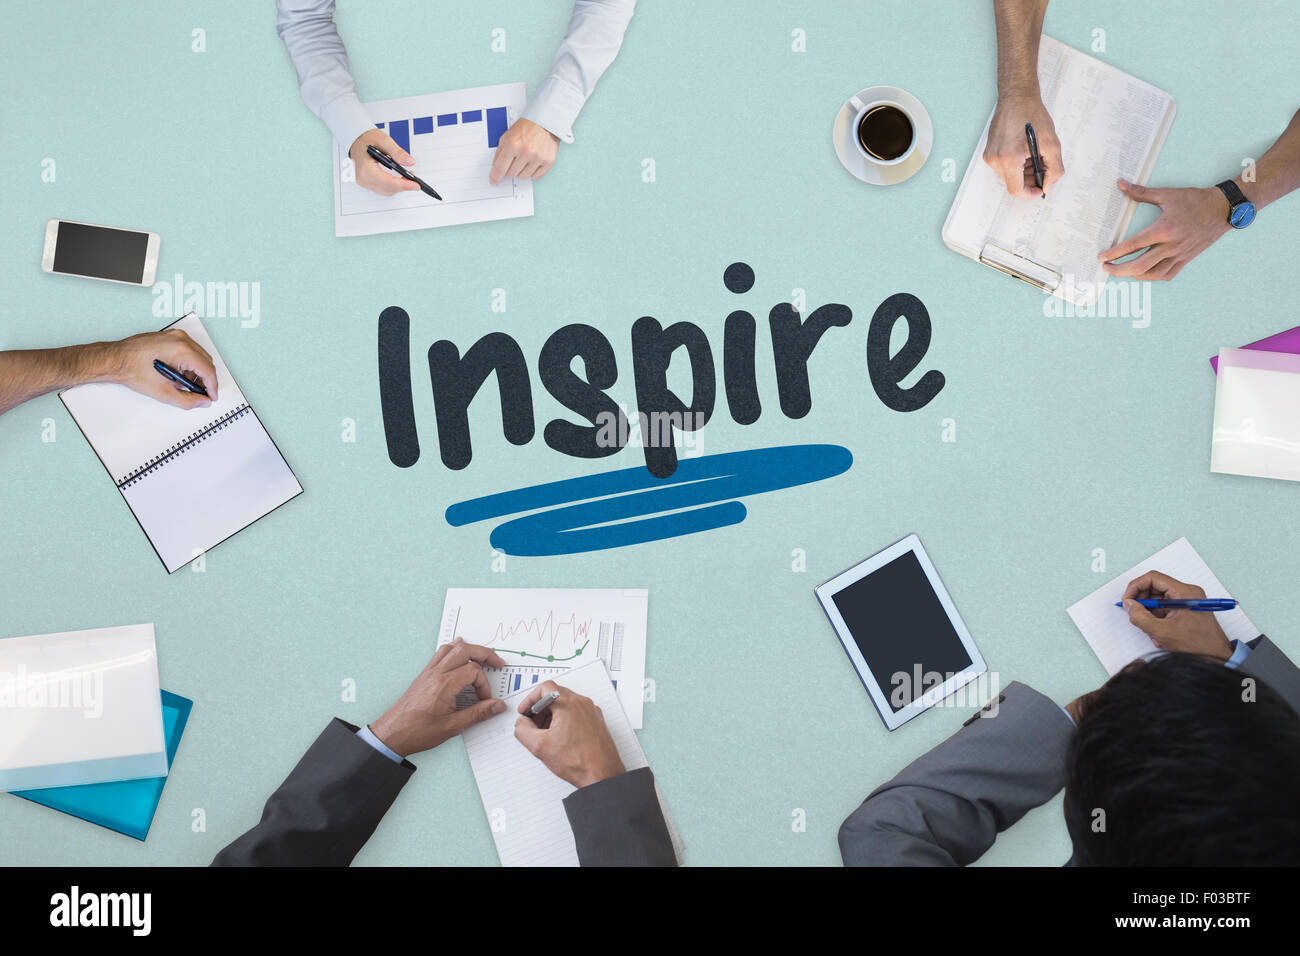 Inspire against business meeting - Stock Image